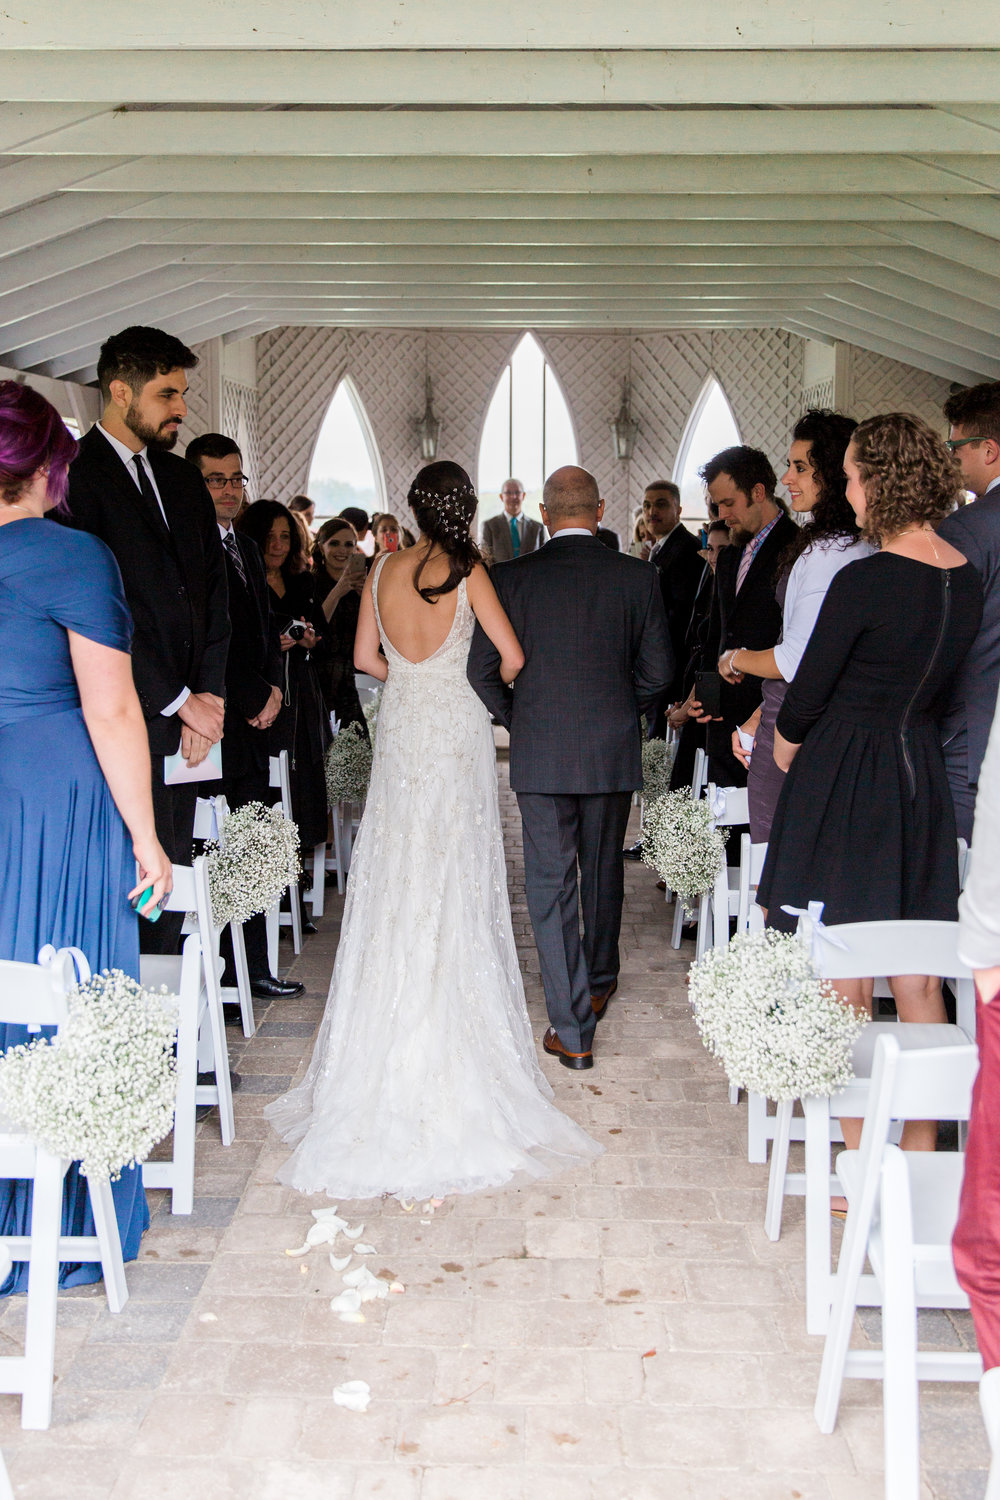 Amir-Golbazi-Danielle-Giroux-Photography_Toronto-Wedding_Cedarwood_Rachel-Paul_166.jpg